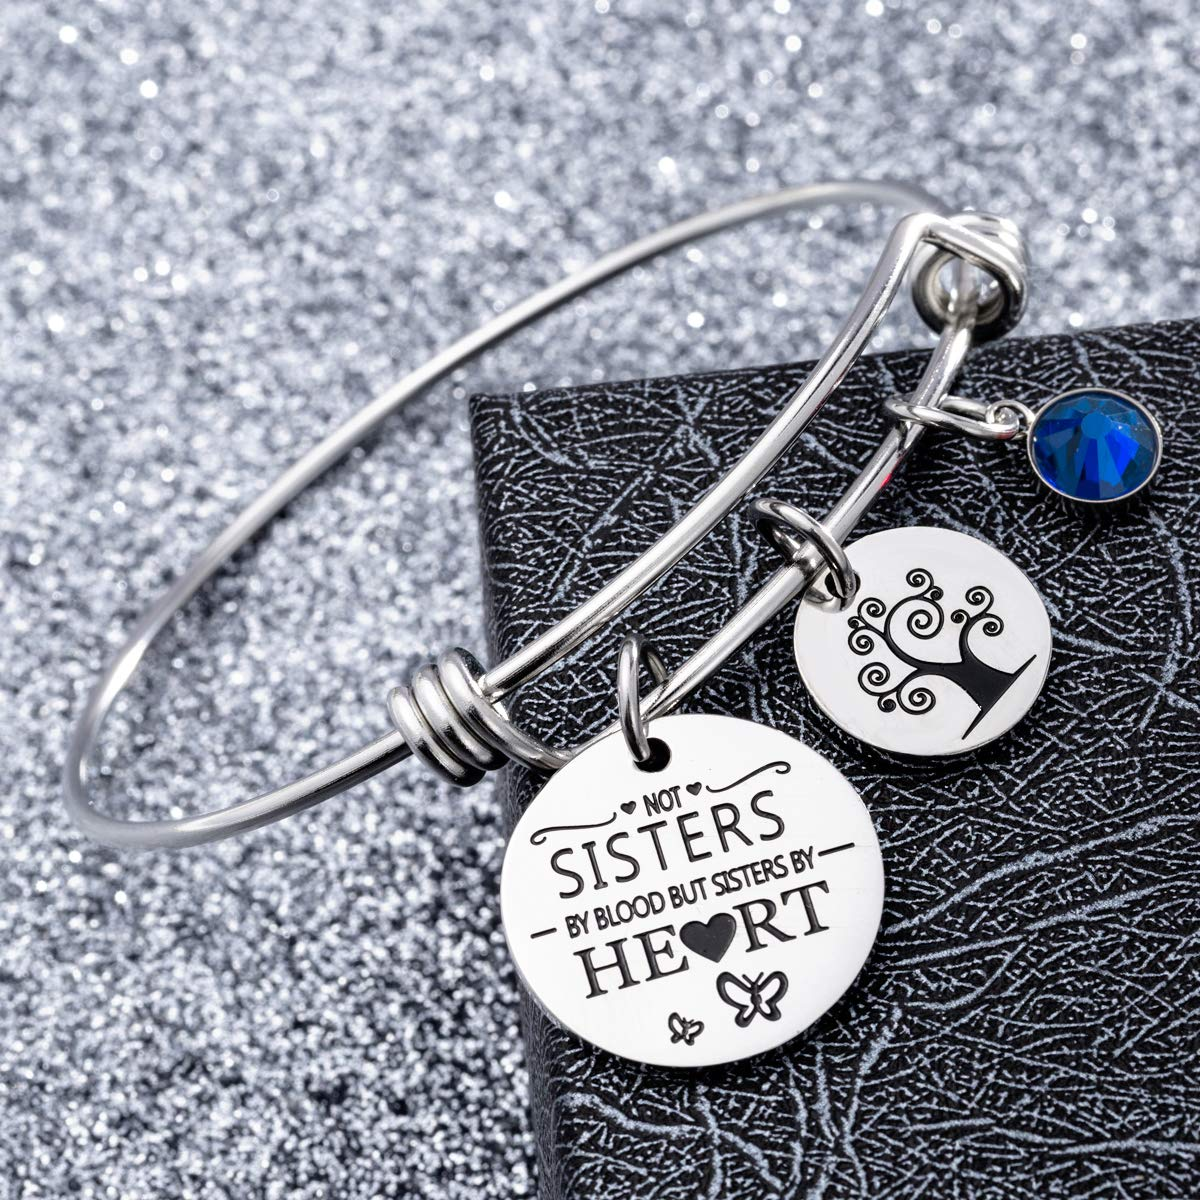 omodofo Best Friends Birthstone Bracelet - Not Sister By Blood But Sister By Heart Friendship Inspirational Charm Cuff Bangle Sister Jewelry Graduation Gifts (September) by omodofo (Image #2)